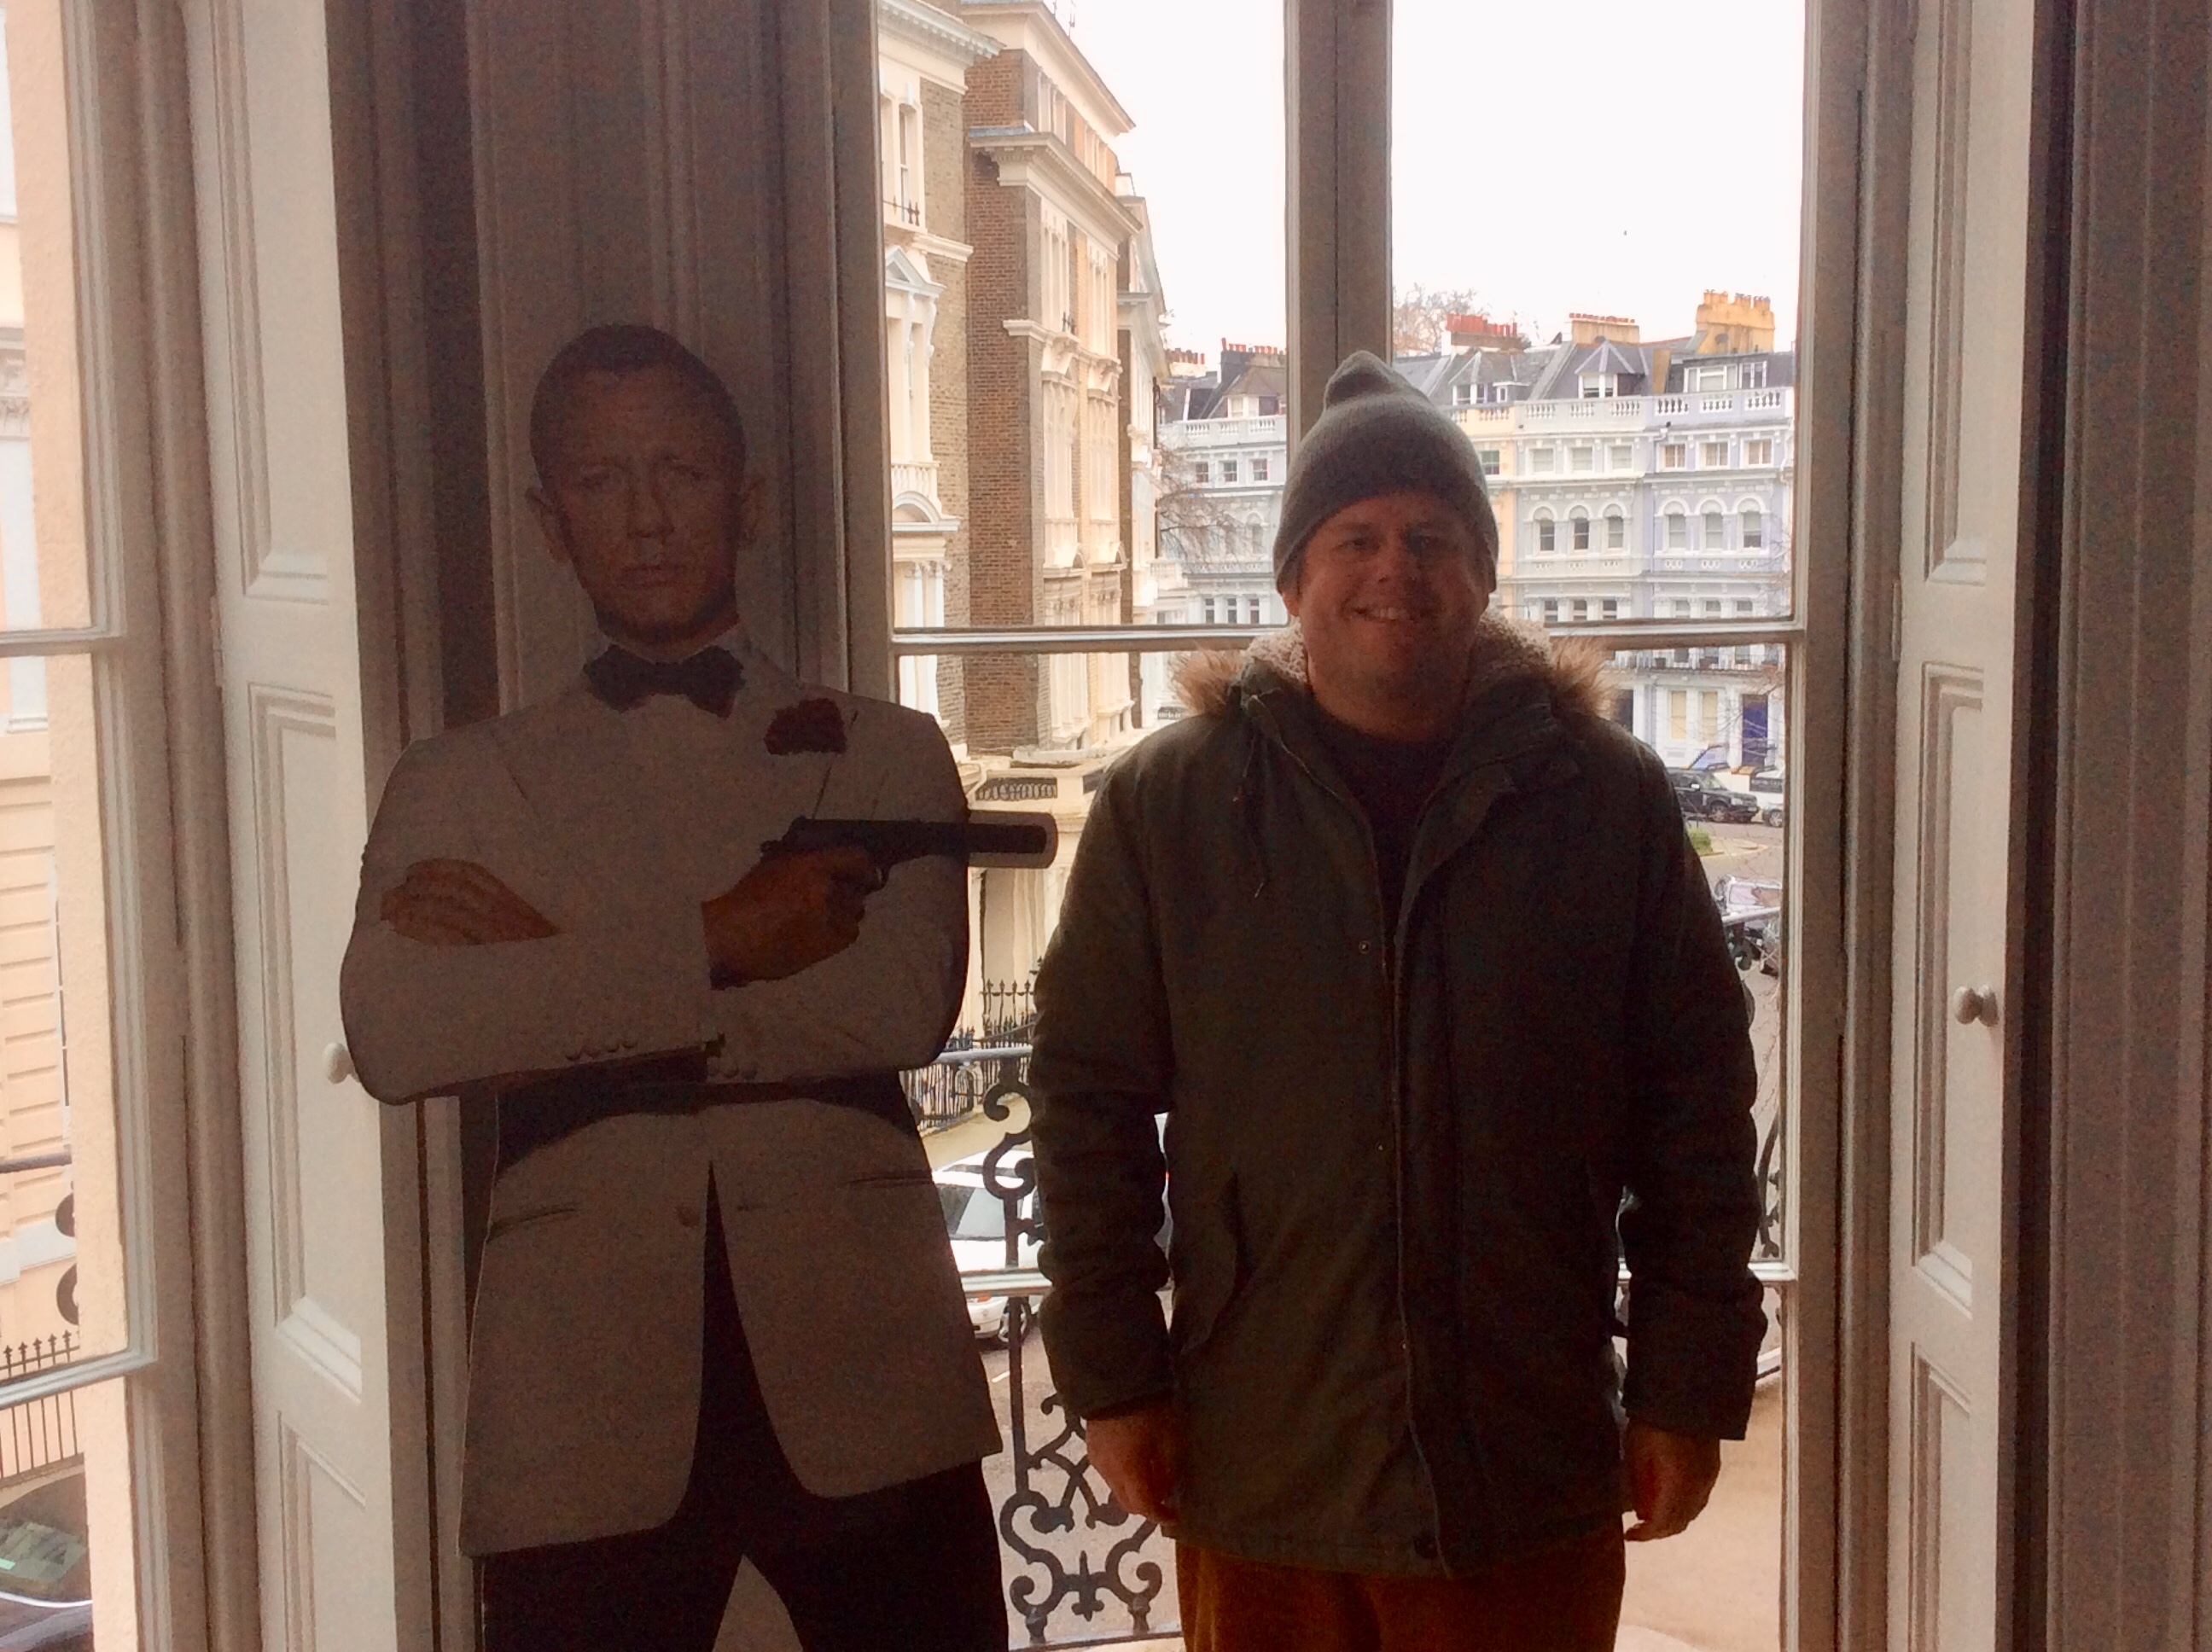 Me and 007 in his rather plush home.